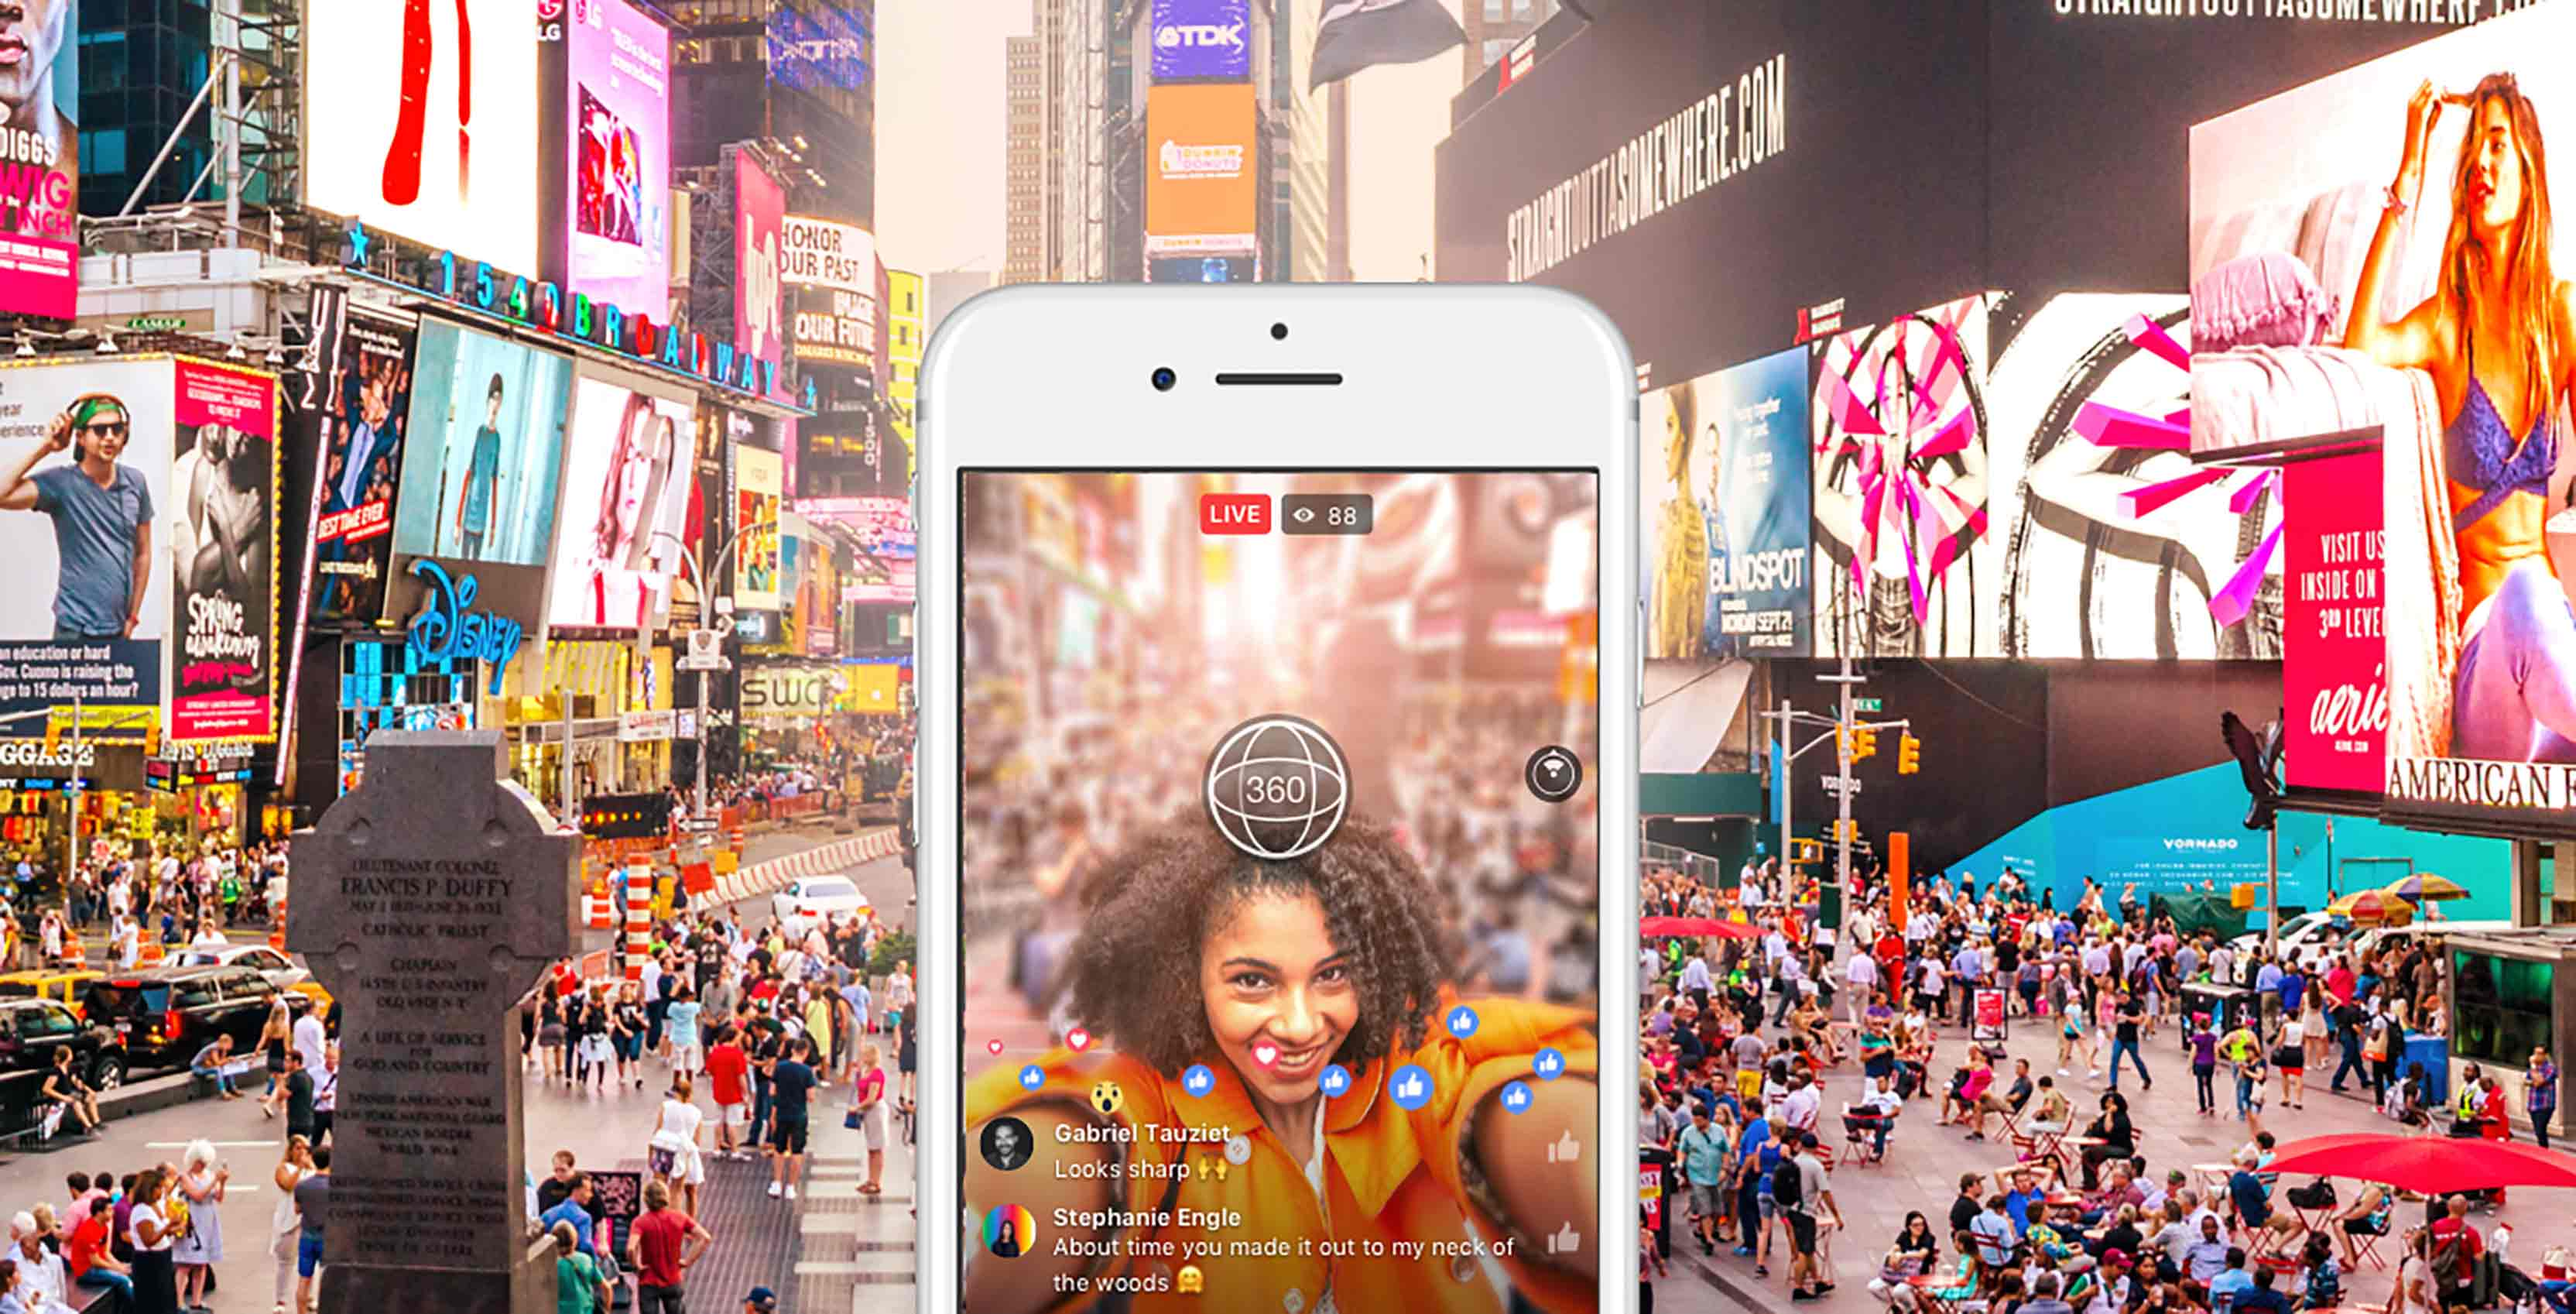 Facebook Live 360 image woman on phone